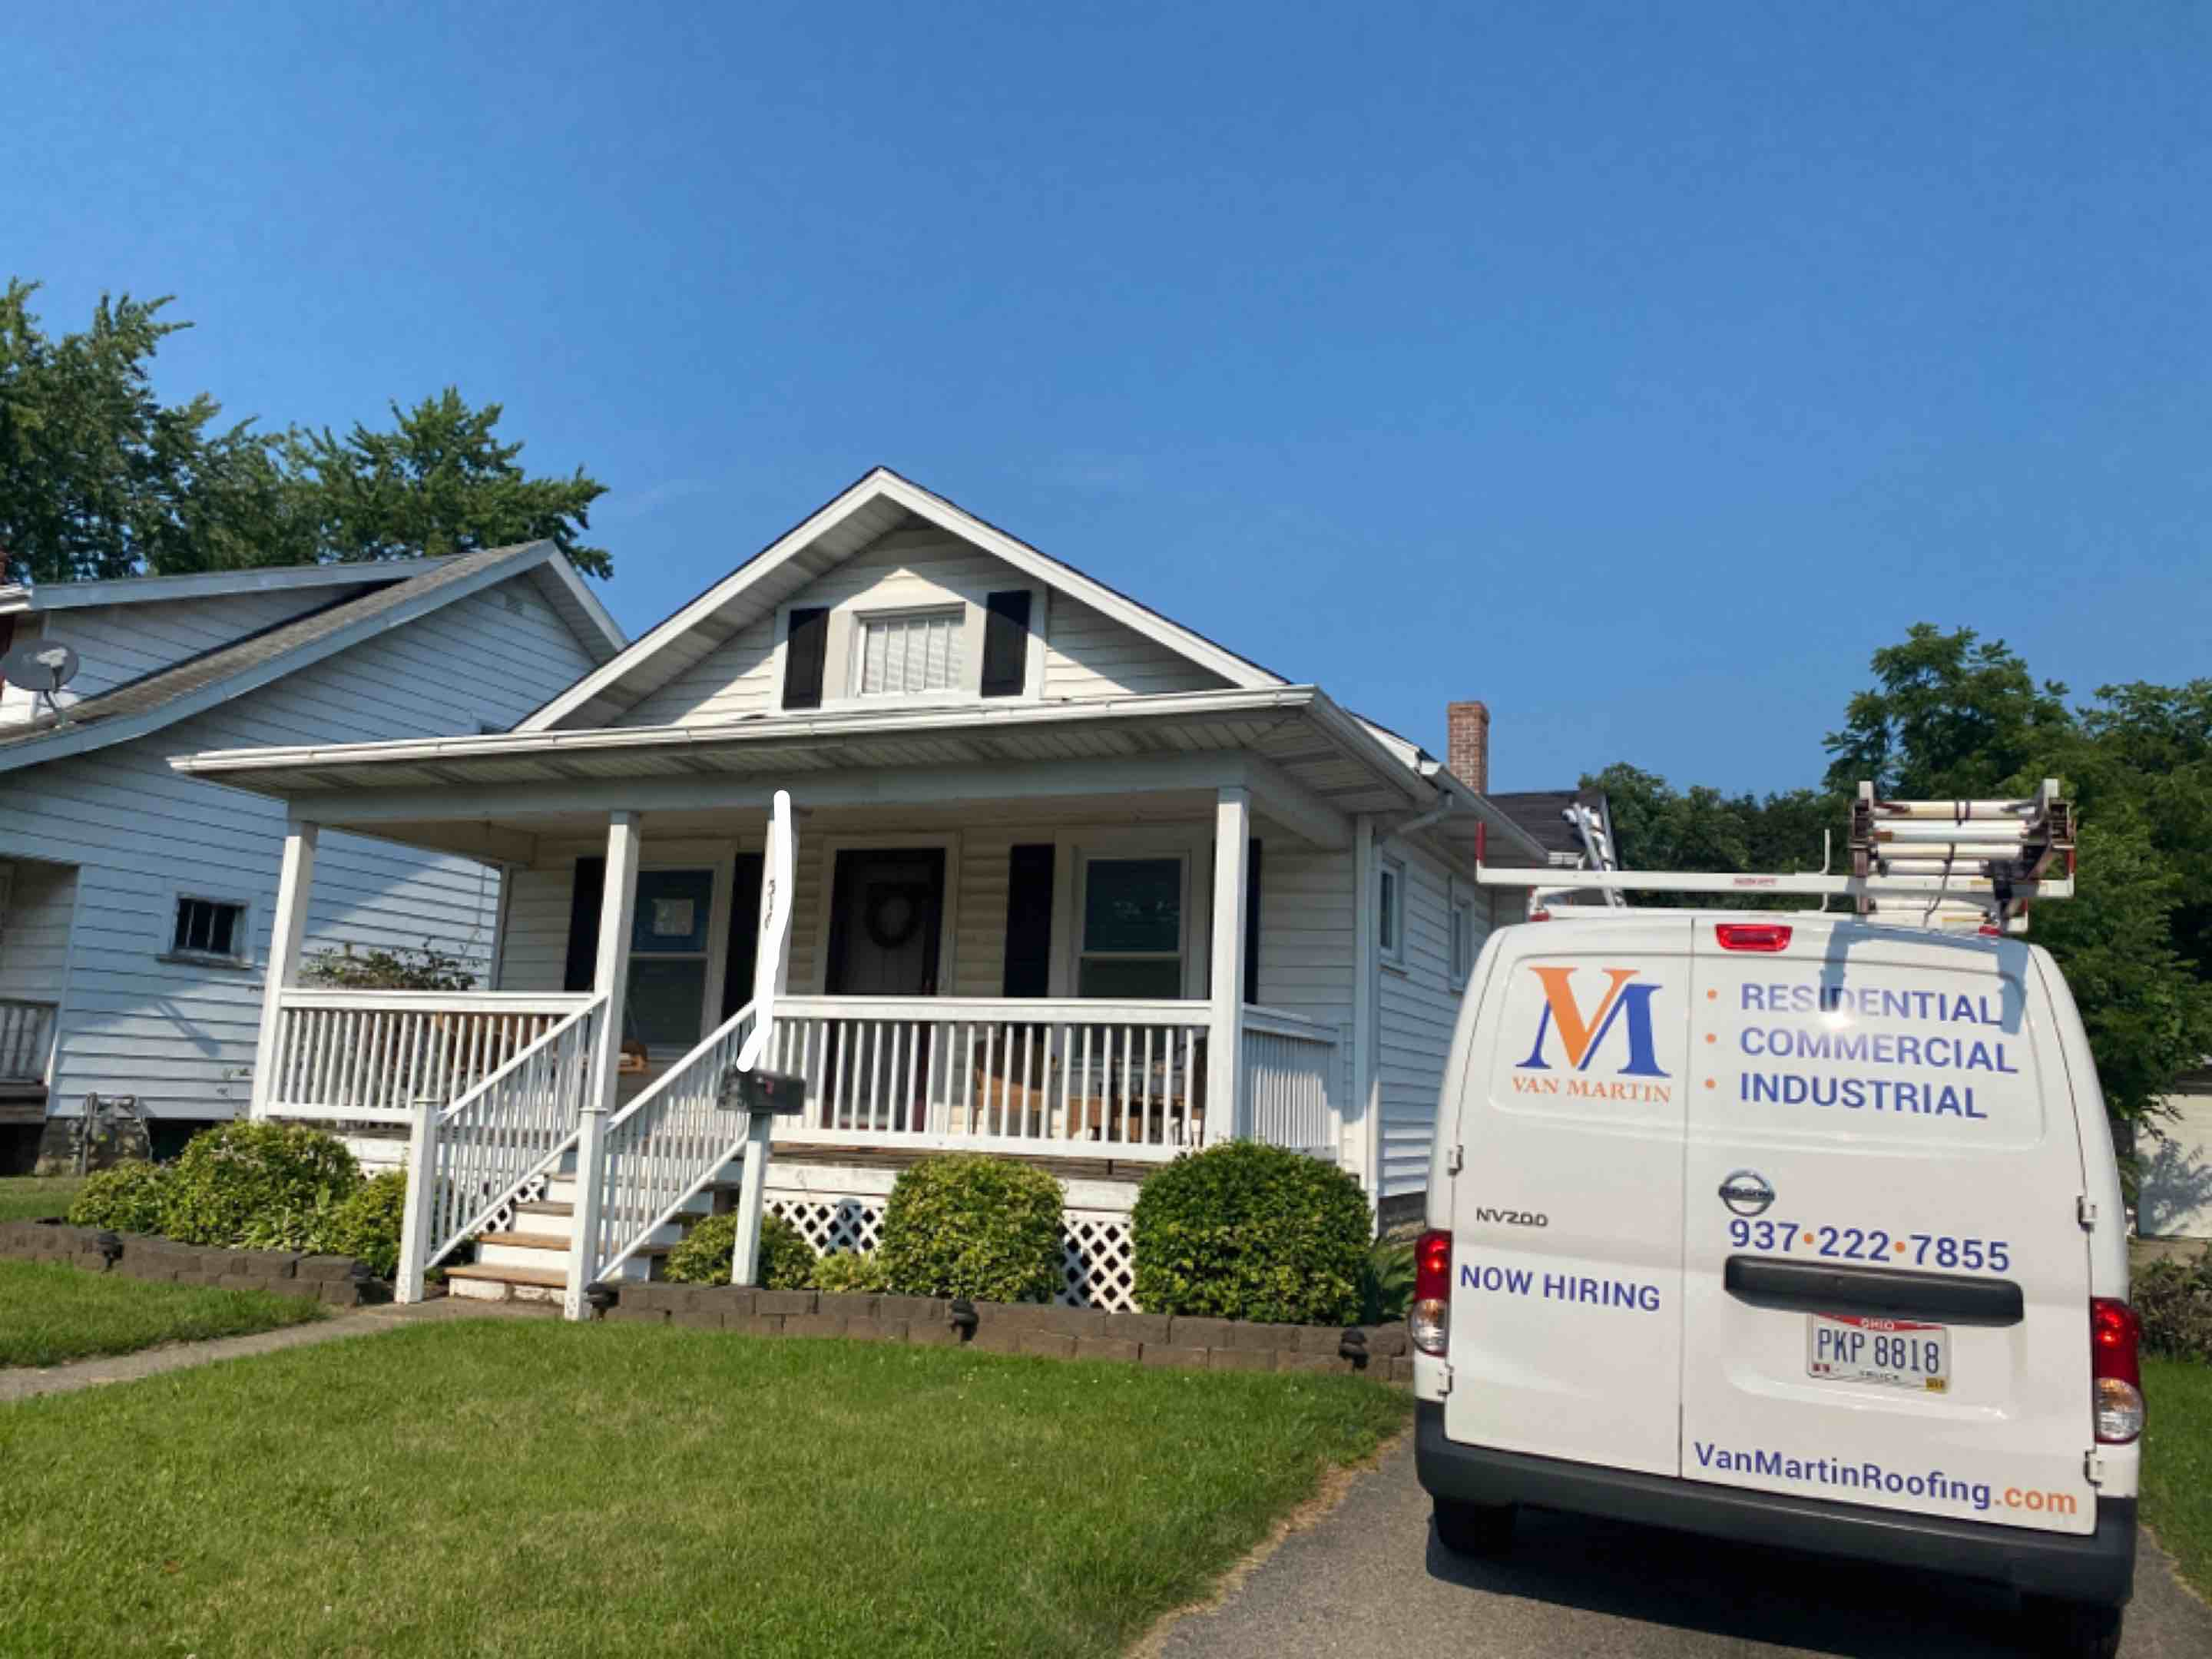 Fairborn, OH - Meeting with a customer for a roof replacement in Fairborn, Ohio.